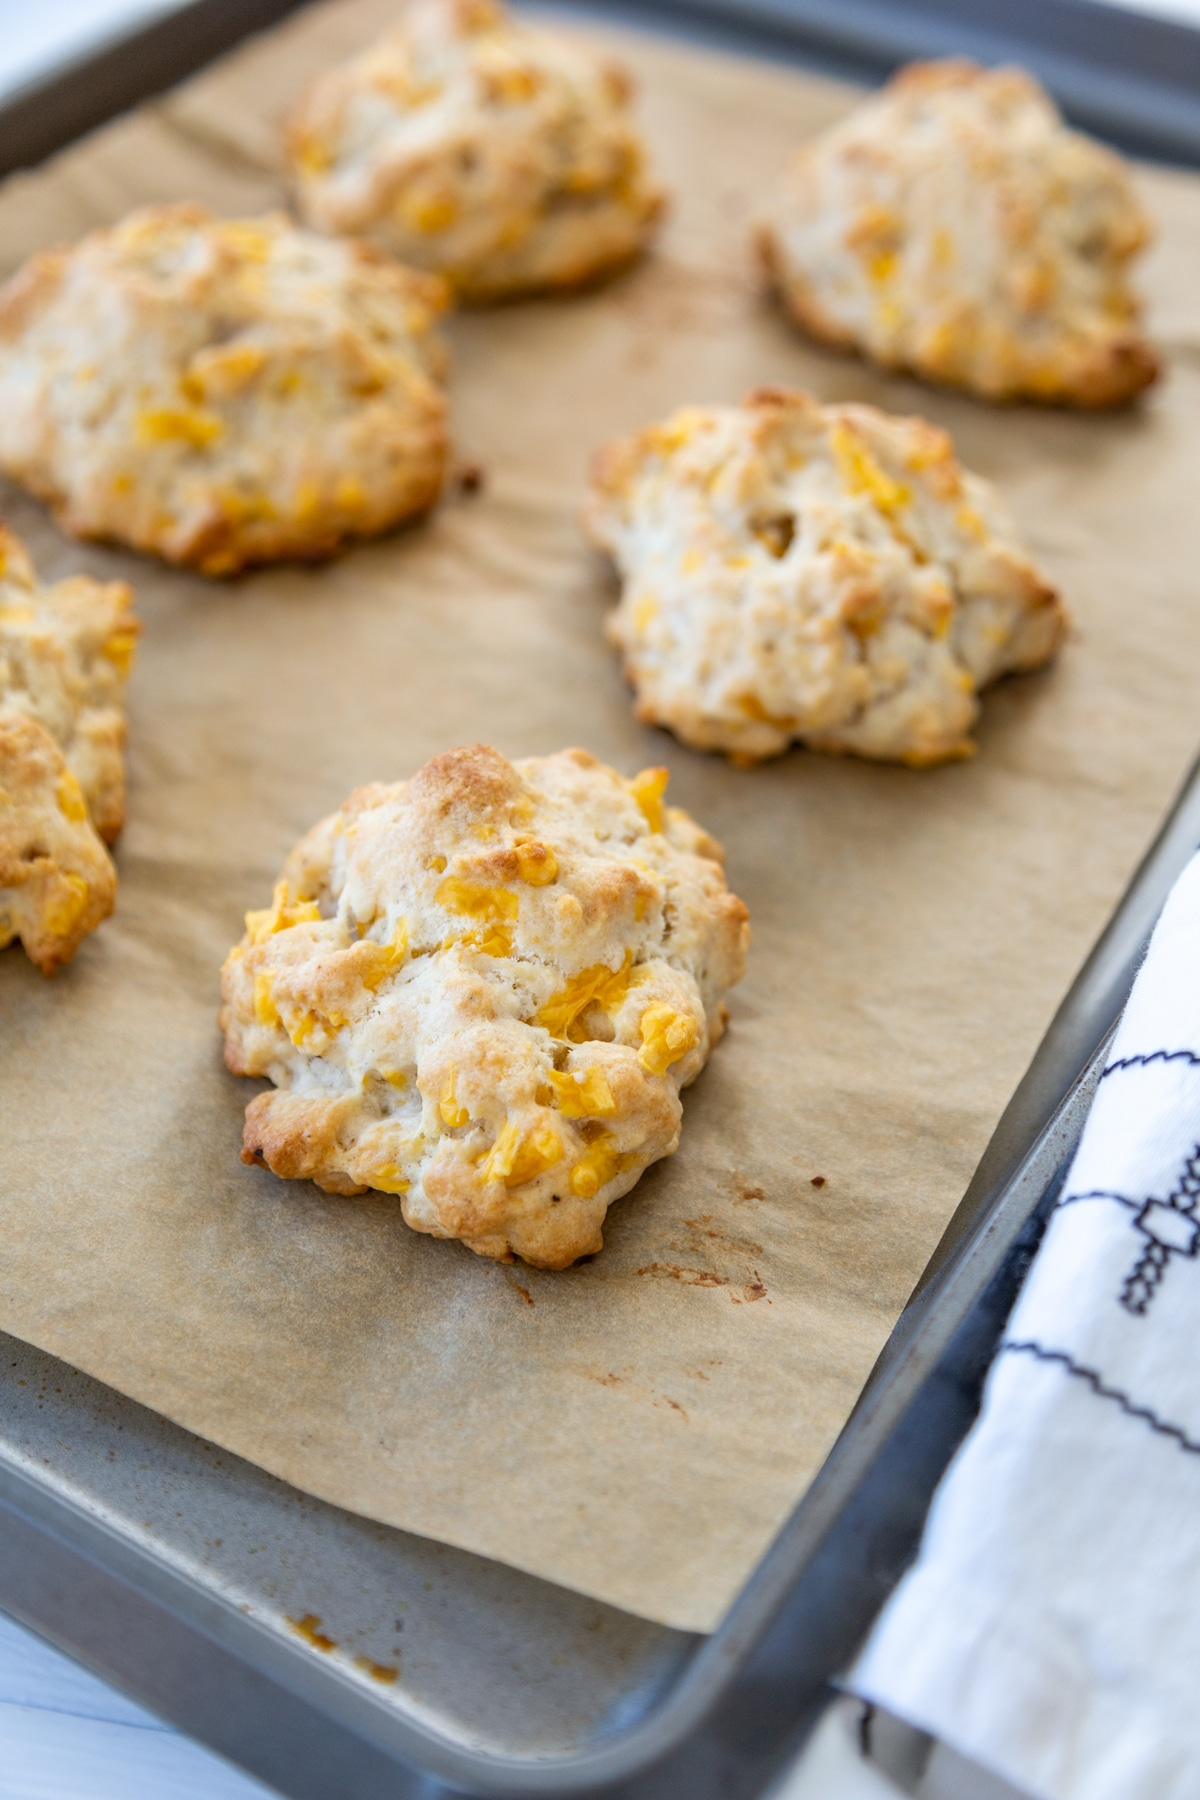 6 cheddar biscuits on a parchment lined baking sheet.